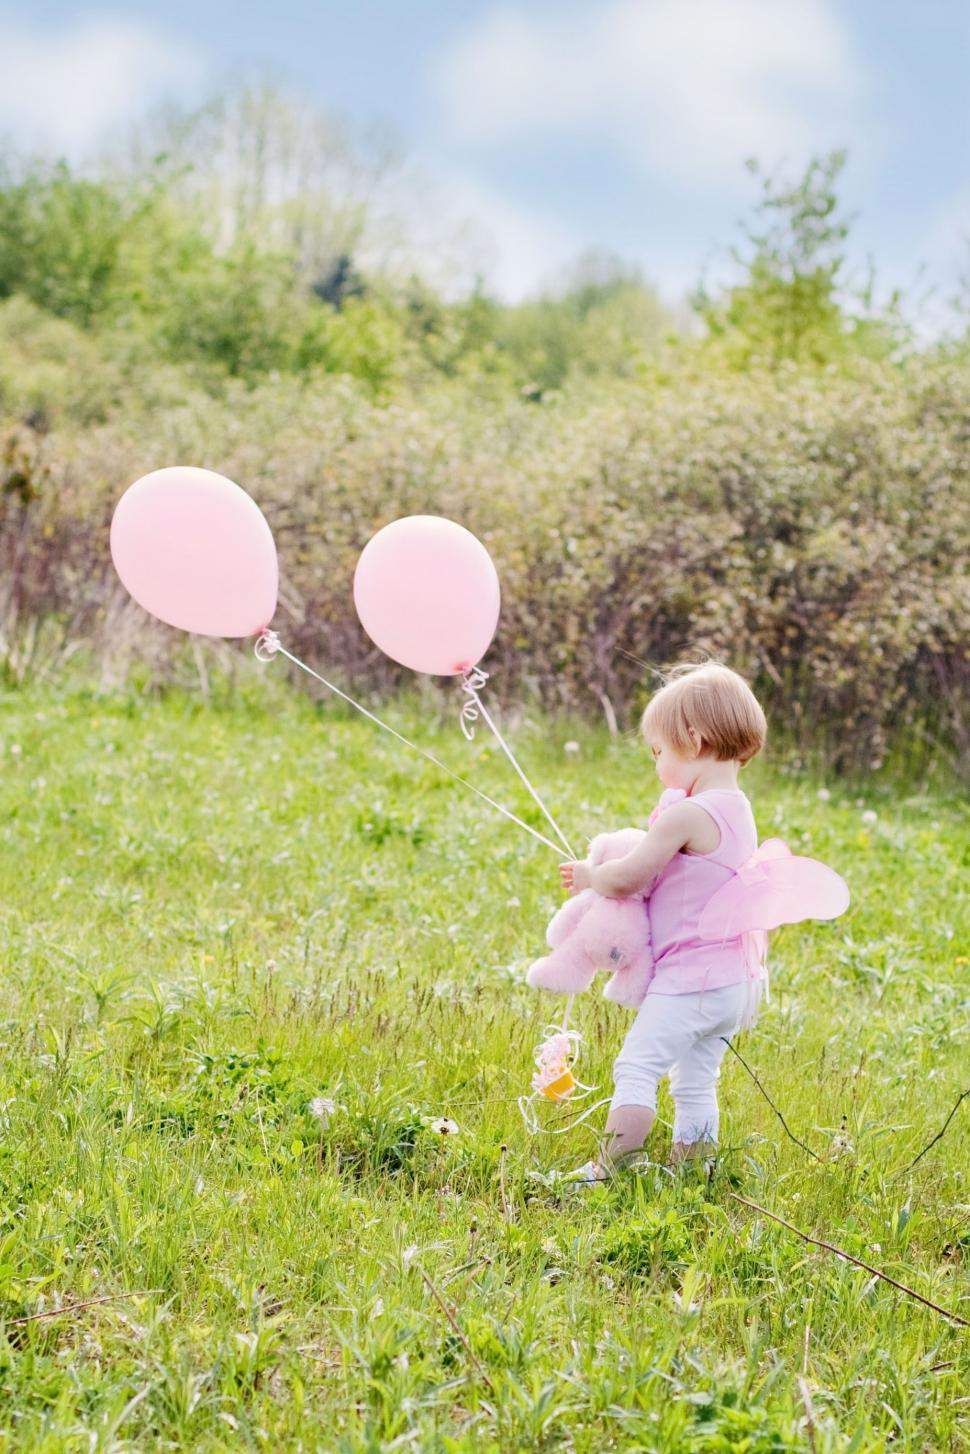 Download Free Stock Photo of Little Girl With Pink Balloons